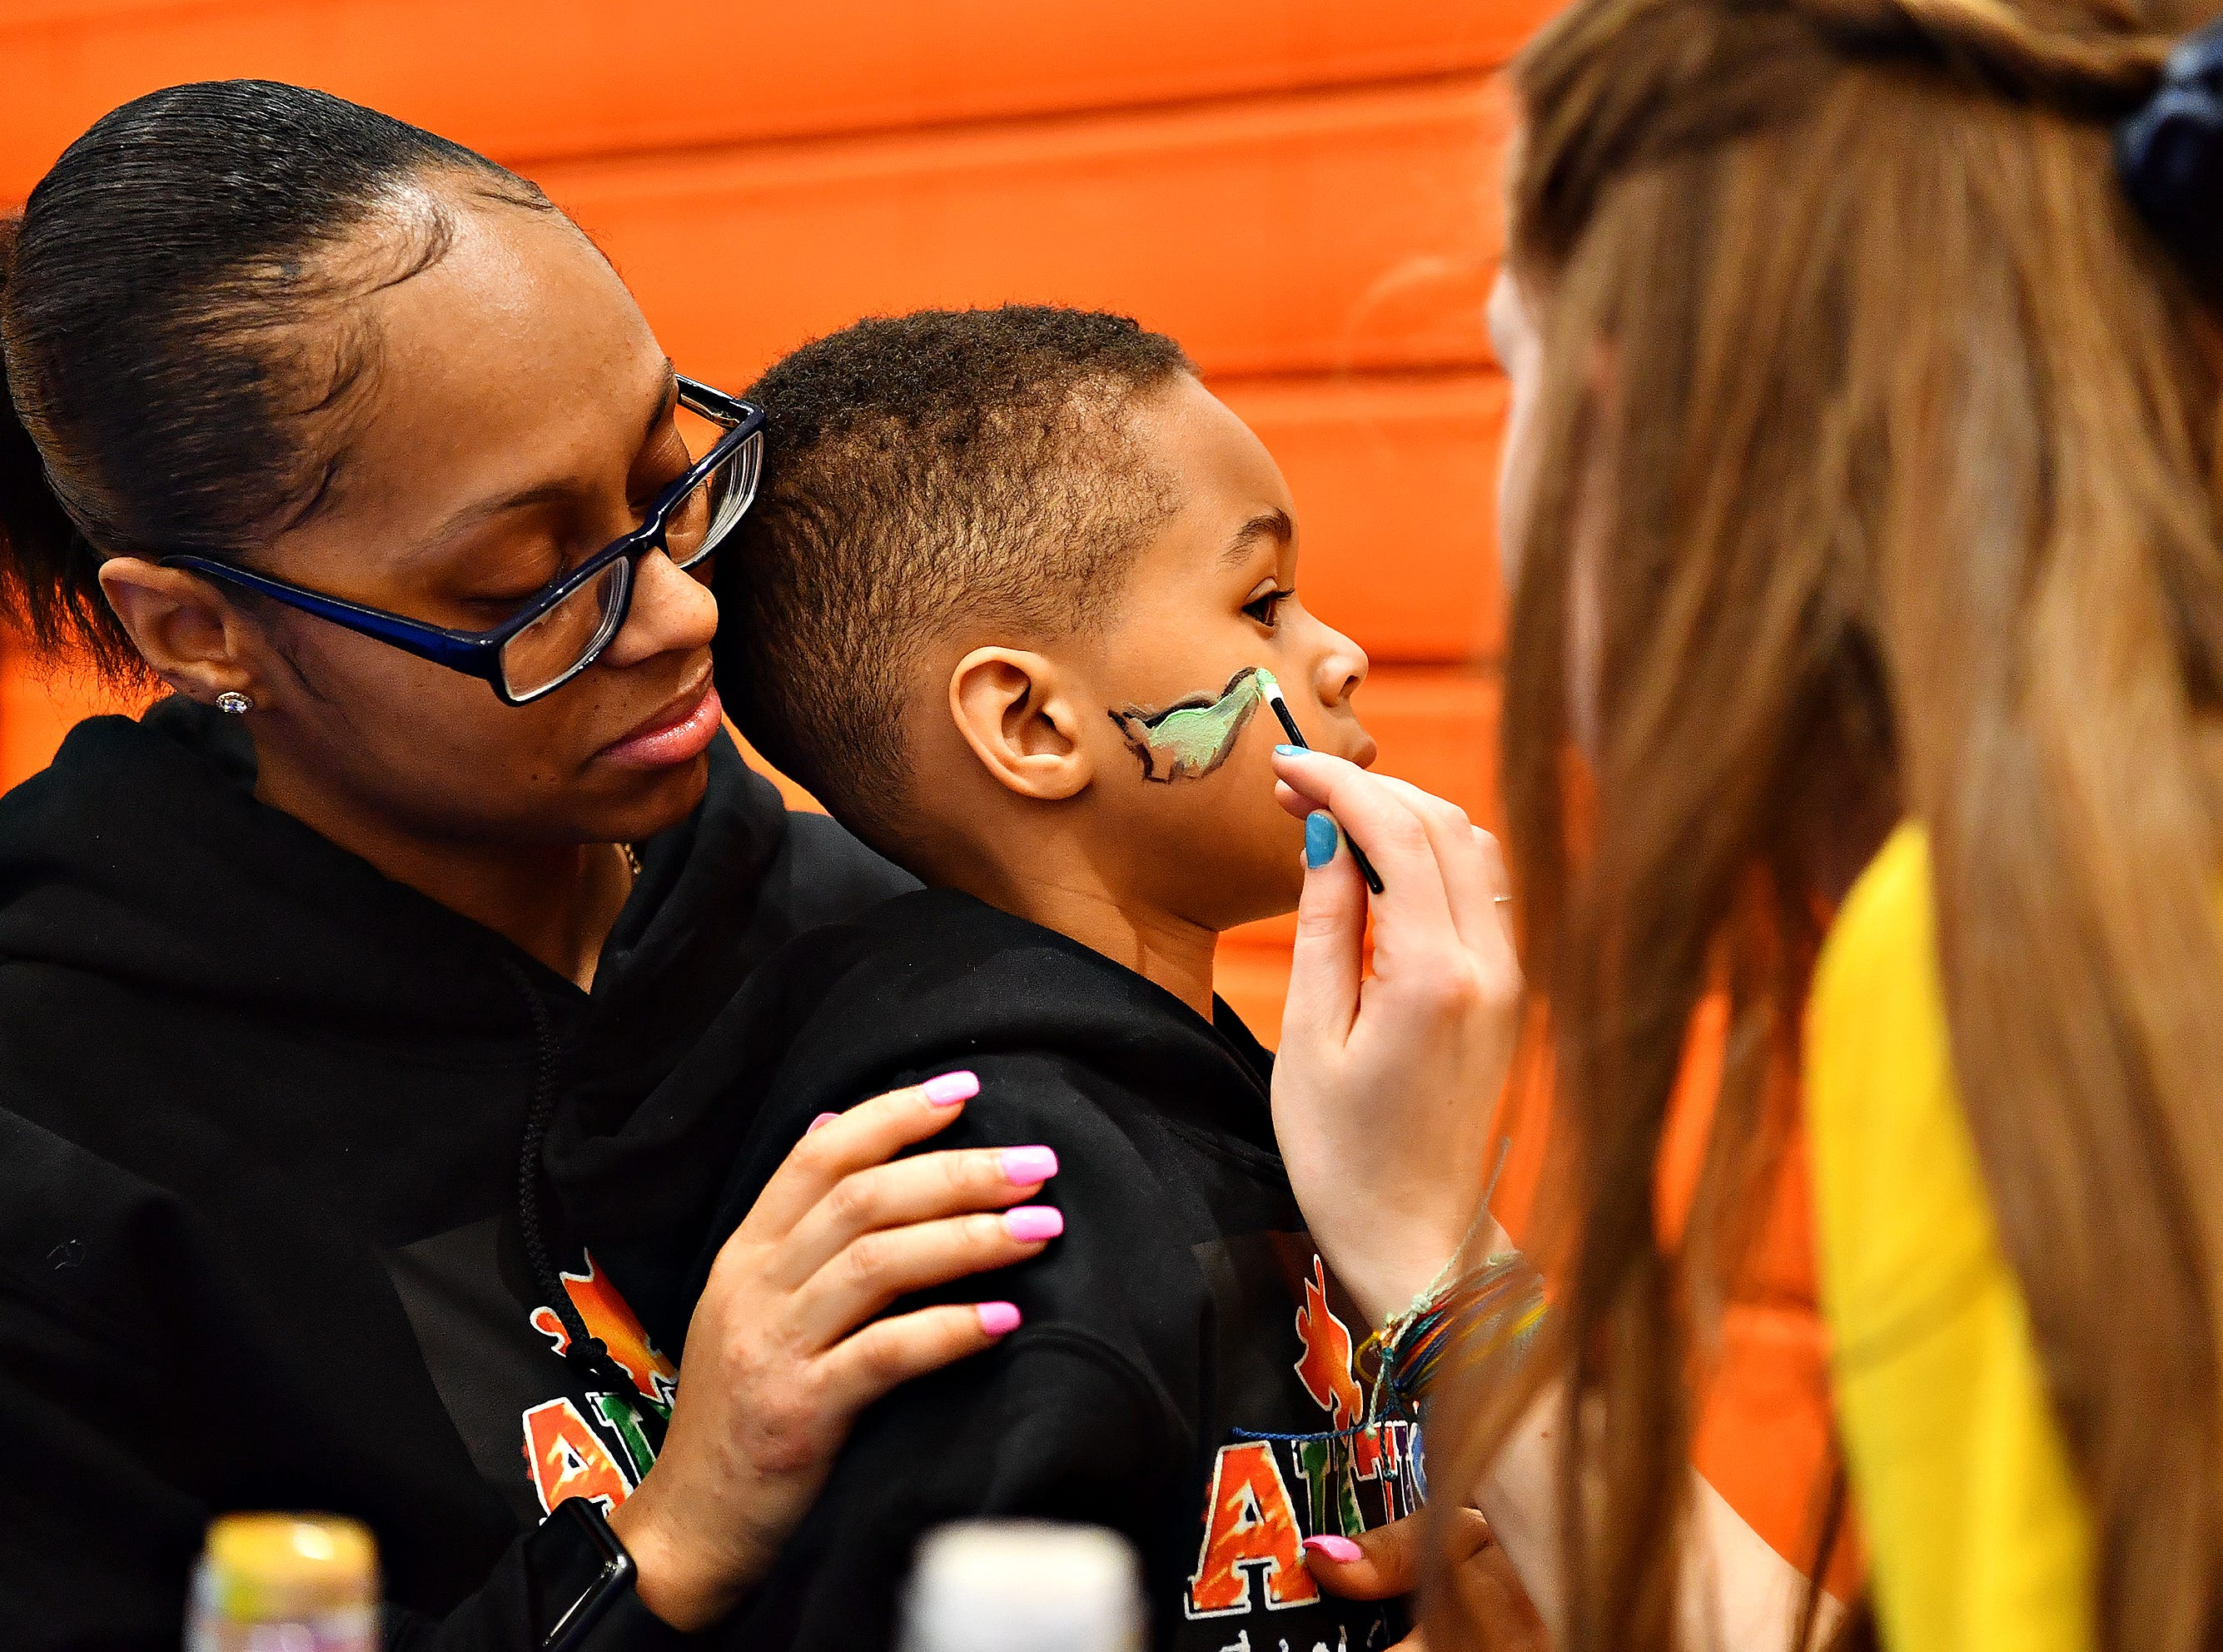 Volunteer Grace Wills, 15, right, of Manchester Township, paints a dinosaur on the face of Jordan Brown, 5, while his mother, Blaire Wright, of Manchester Township, holds him during the 2019 Walk for Autism & Autism Expo at Central York High School in Springettsbury Township, Saturday, April 6, 2019. Dawn J. Sagert photo